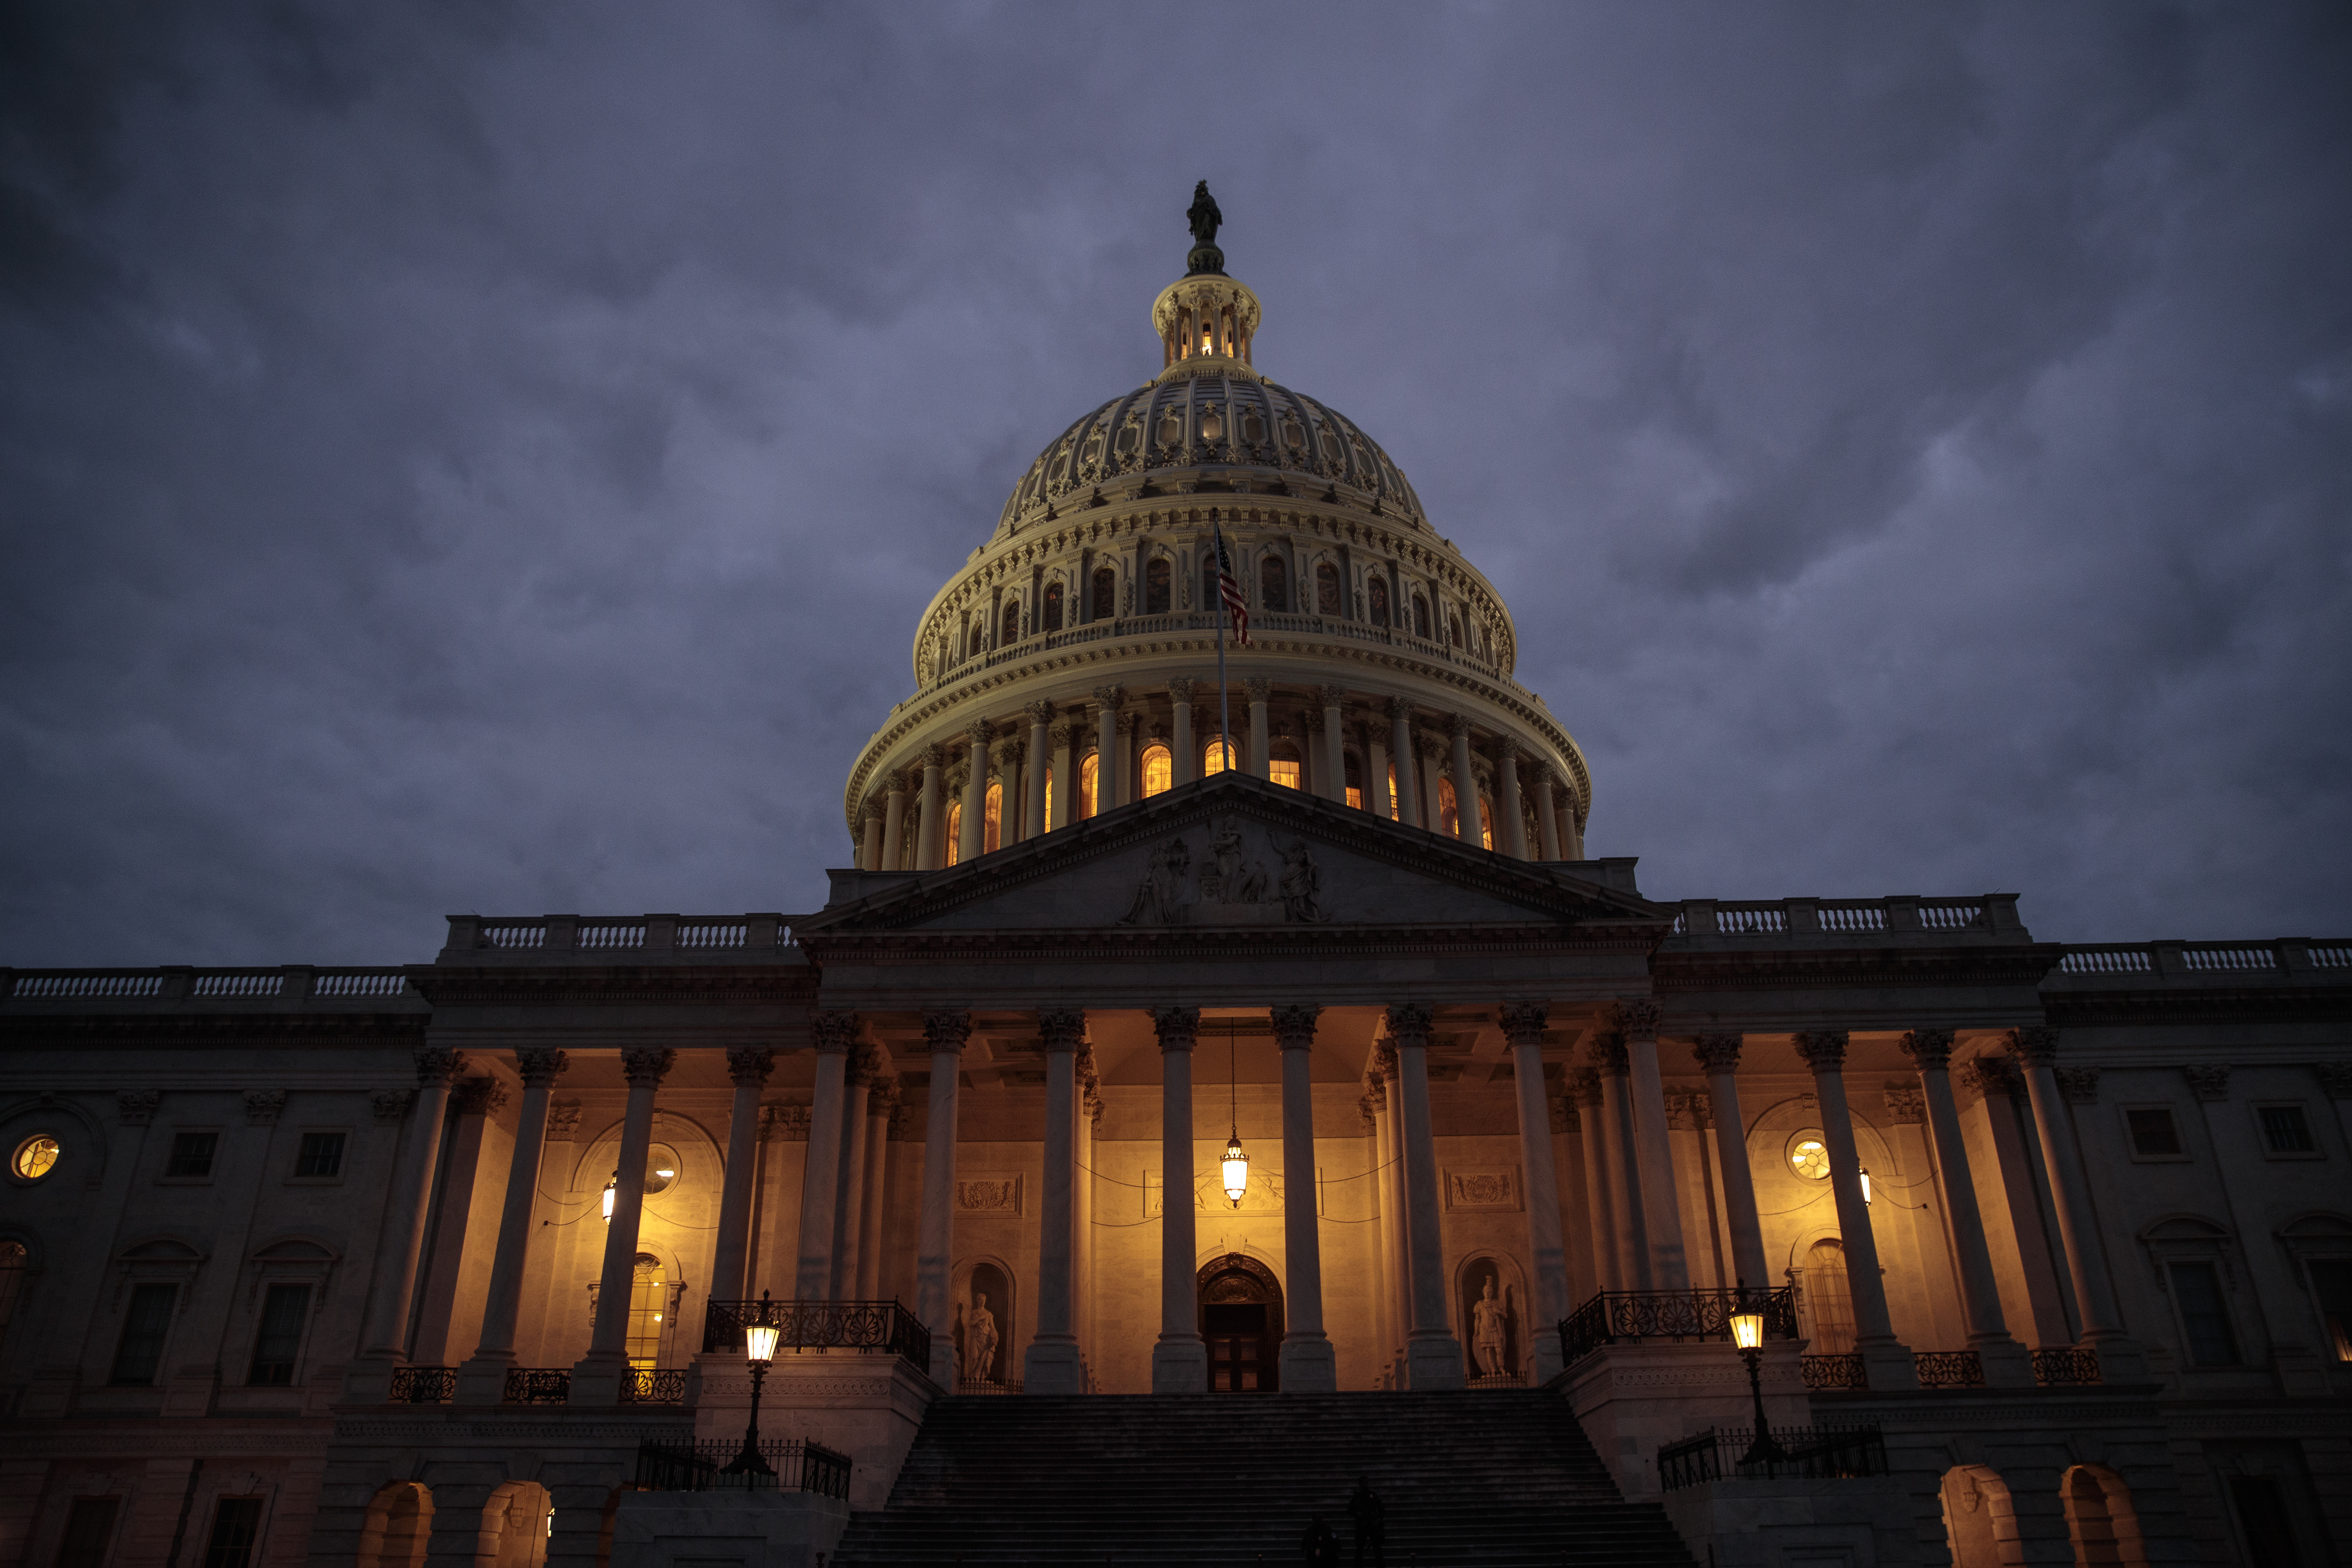 WASHINGTON, DC - JANUARY 21:  The U.S. Capitol is seen at dusk, January 21, 2018 in Washington, DC. Lawmakers are convening for a Sunday session to try to resolve the government shutdown. (Photo by Drew Angerer/Getty Images)